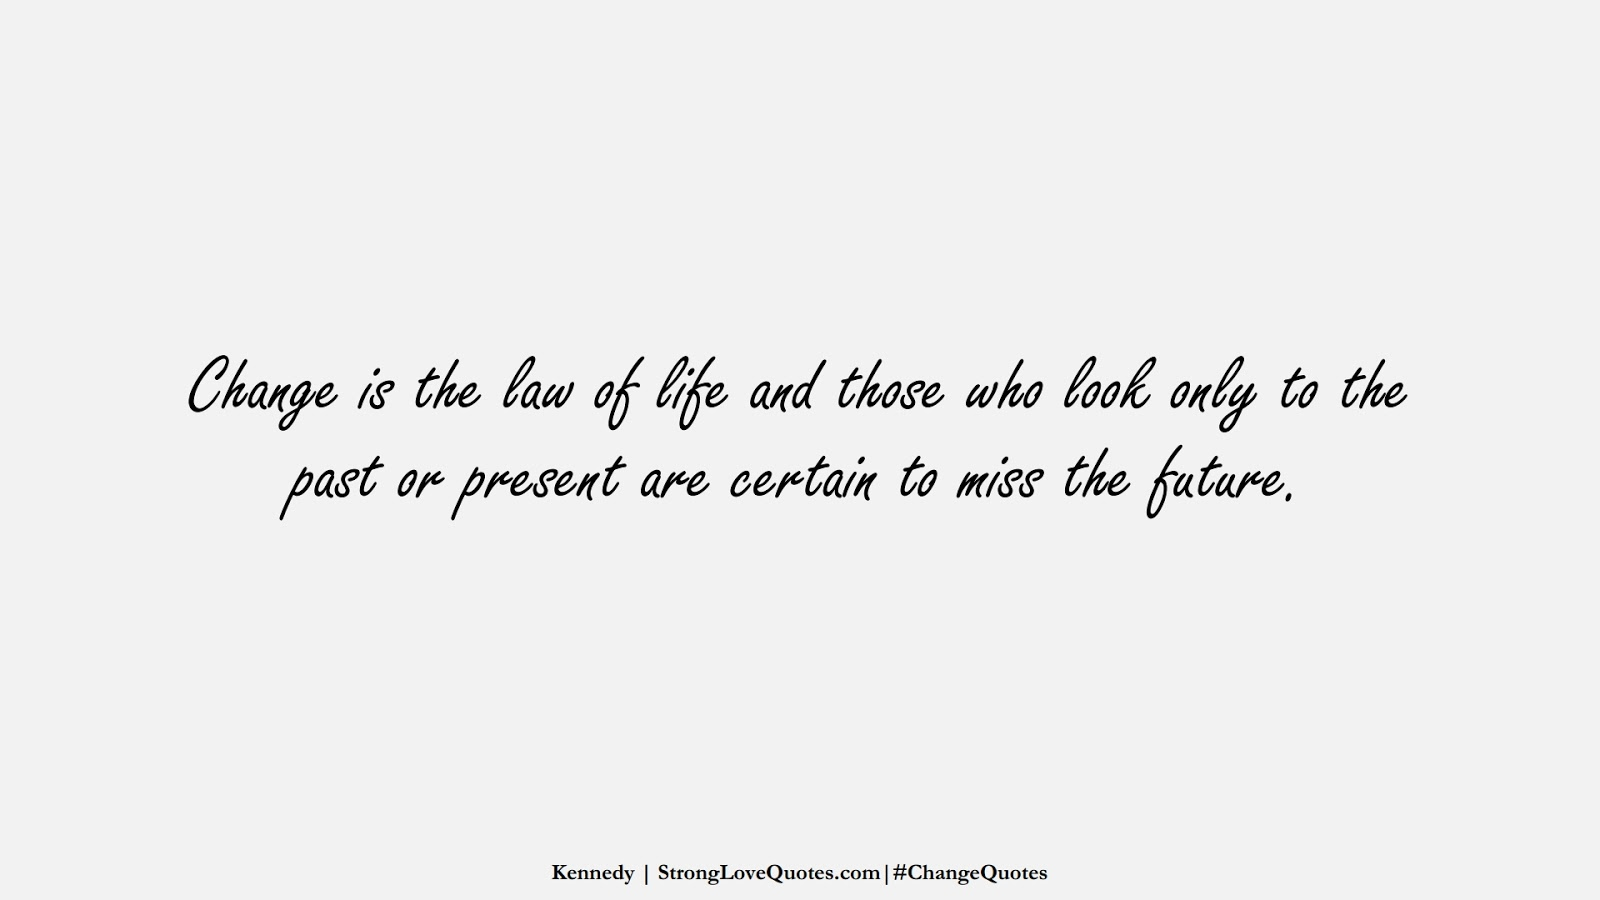 Change is the law of life and those who look only to the past or present are certain to miss the future. (Kennedy);  #ChangeQuotes